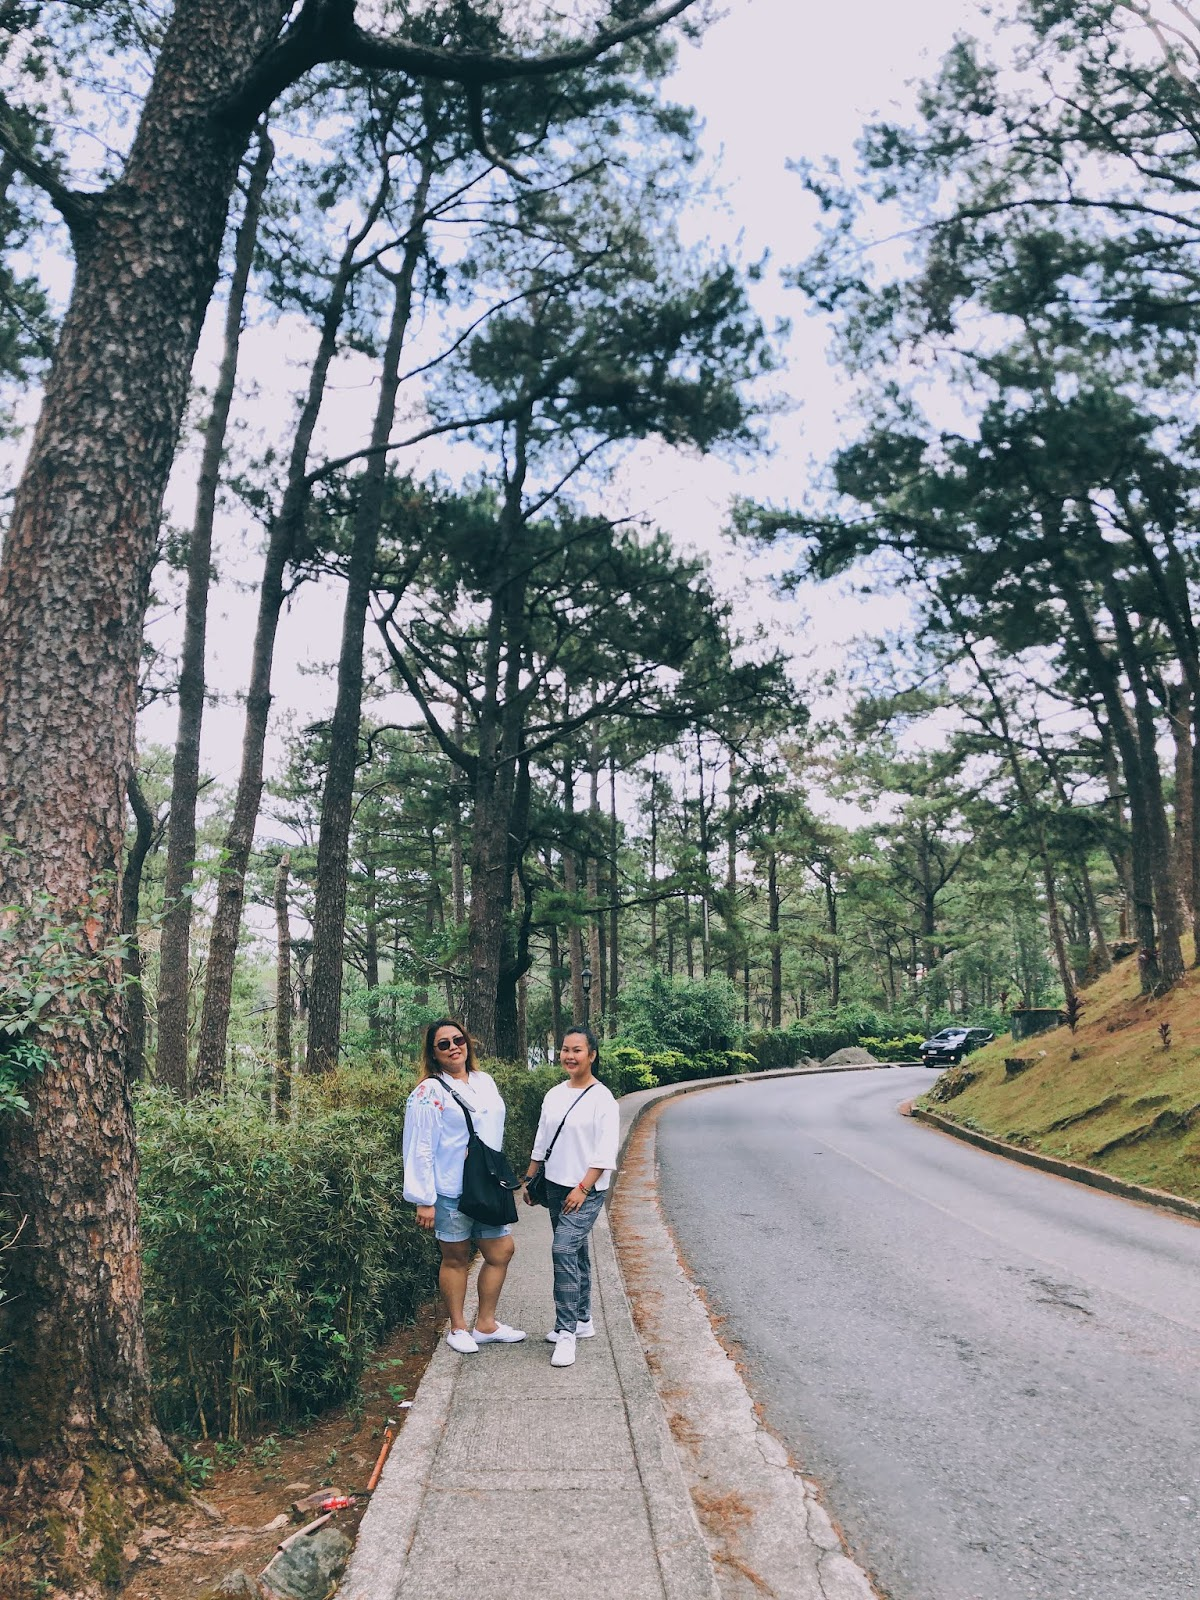 Walking around camp john hay